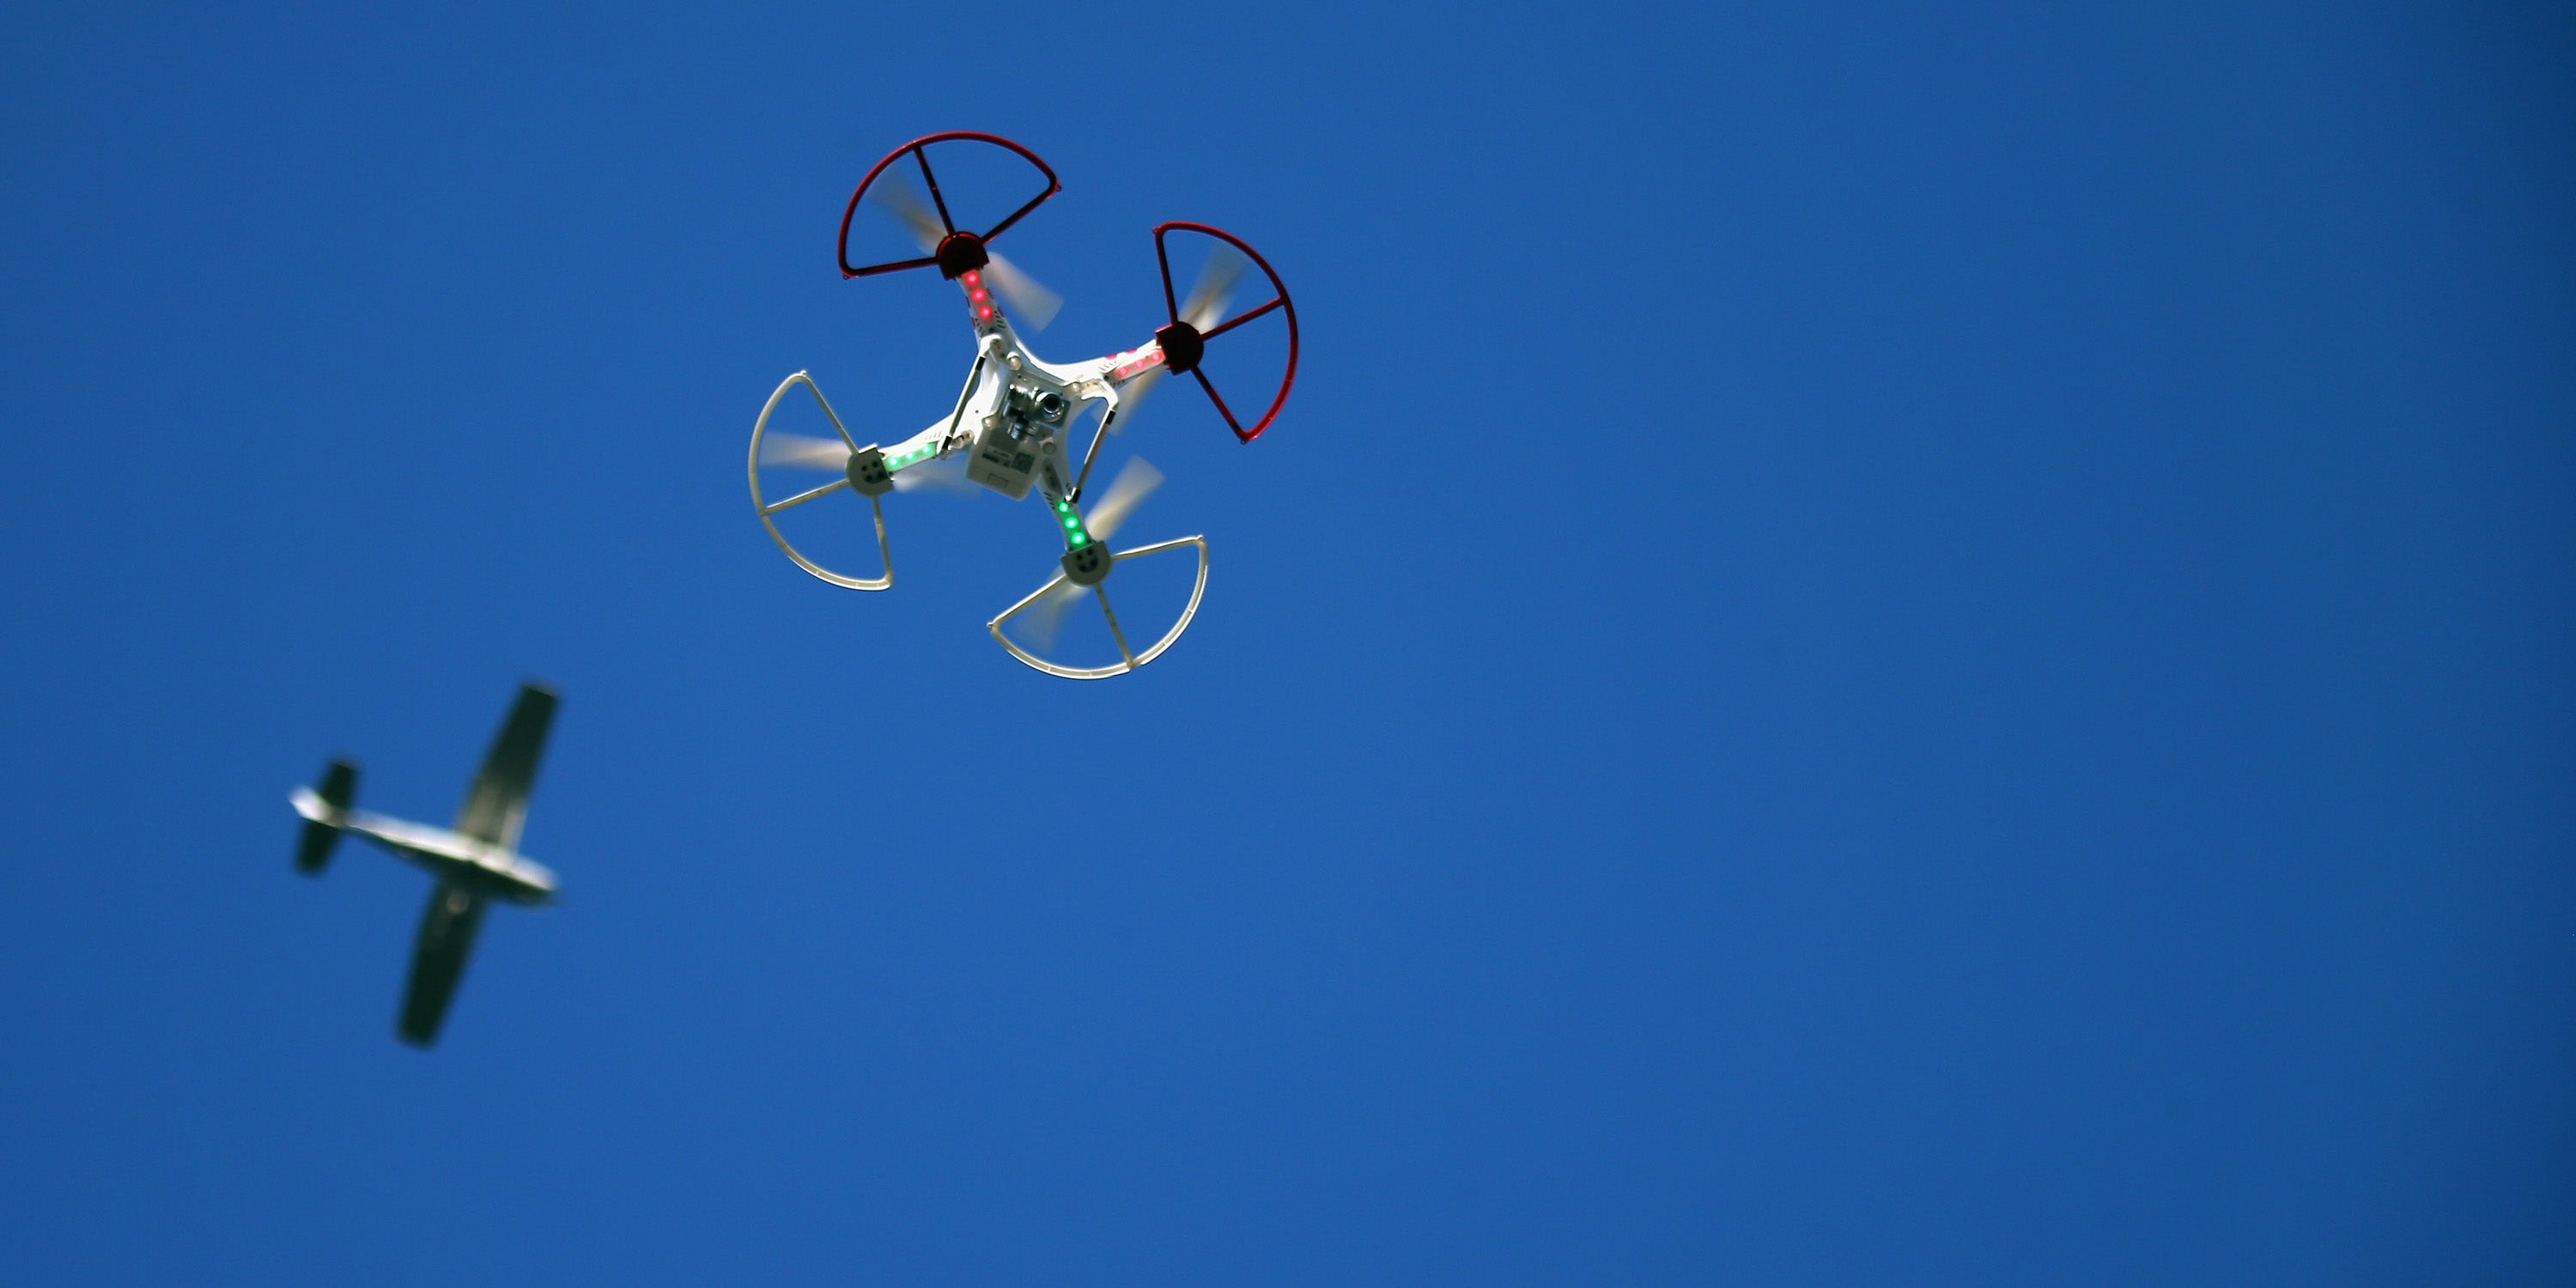 FAA Releases New Drone Rules, Including One Fairly Shady Loophole